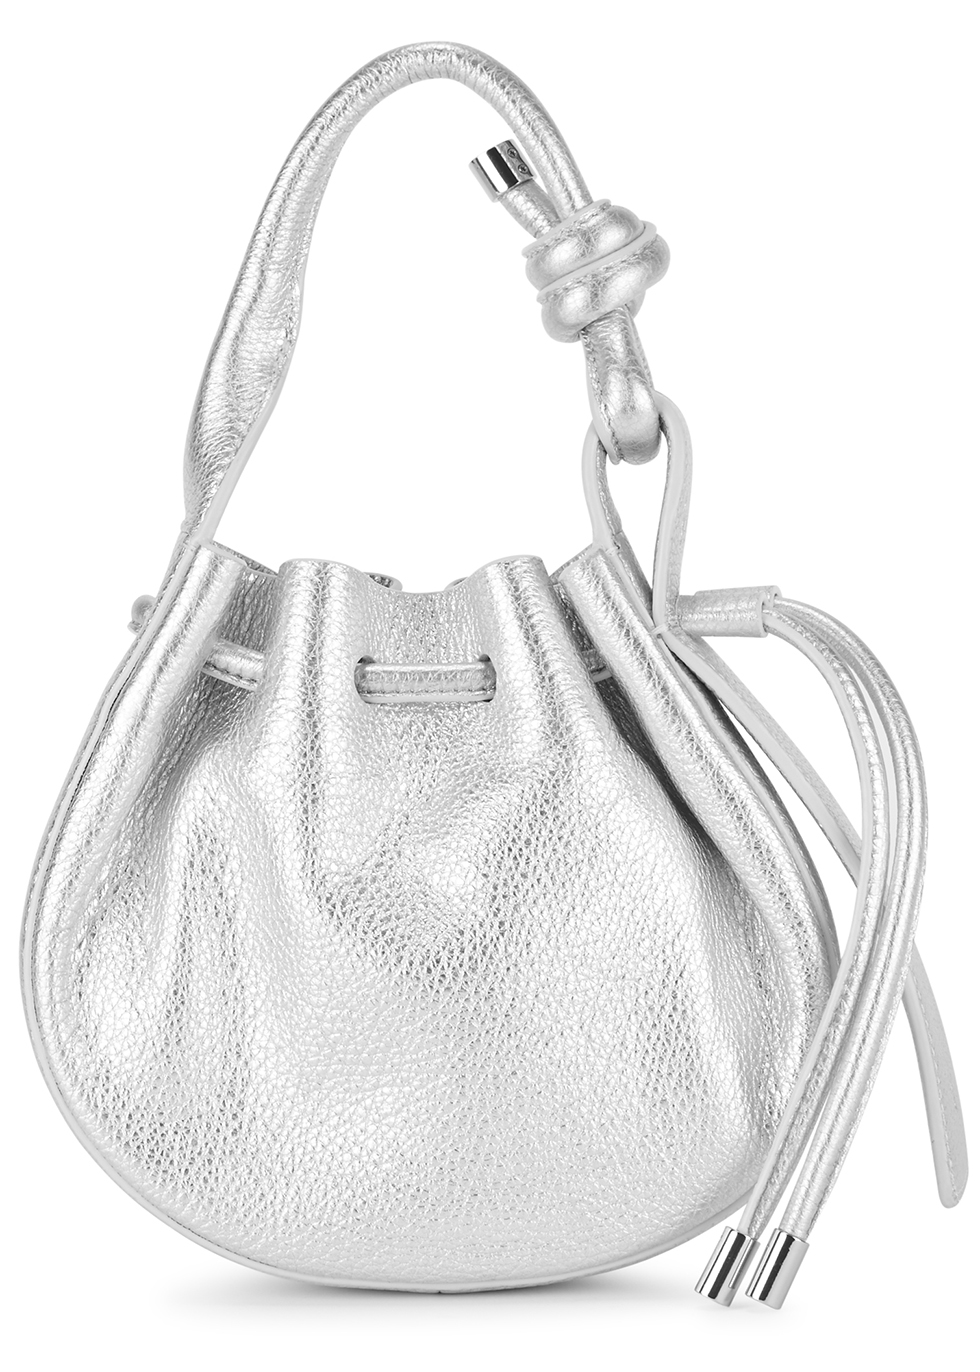 Ina mini silver leather cross-body bag - Behno